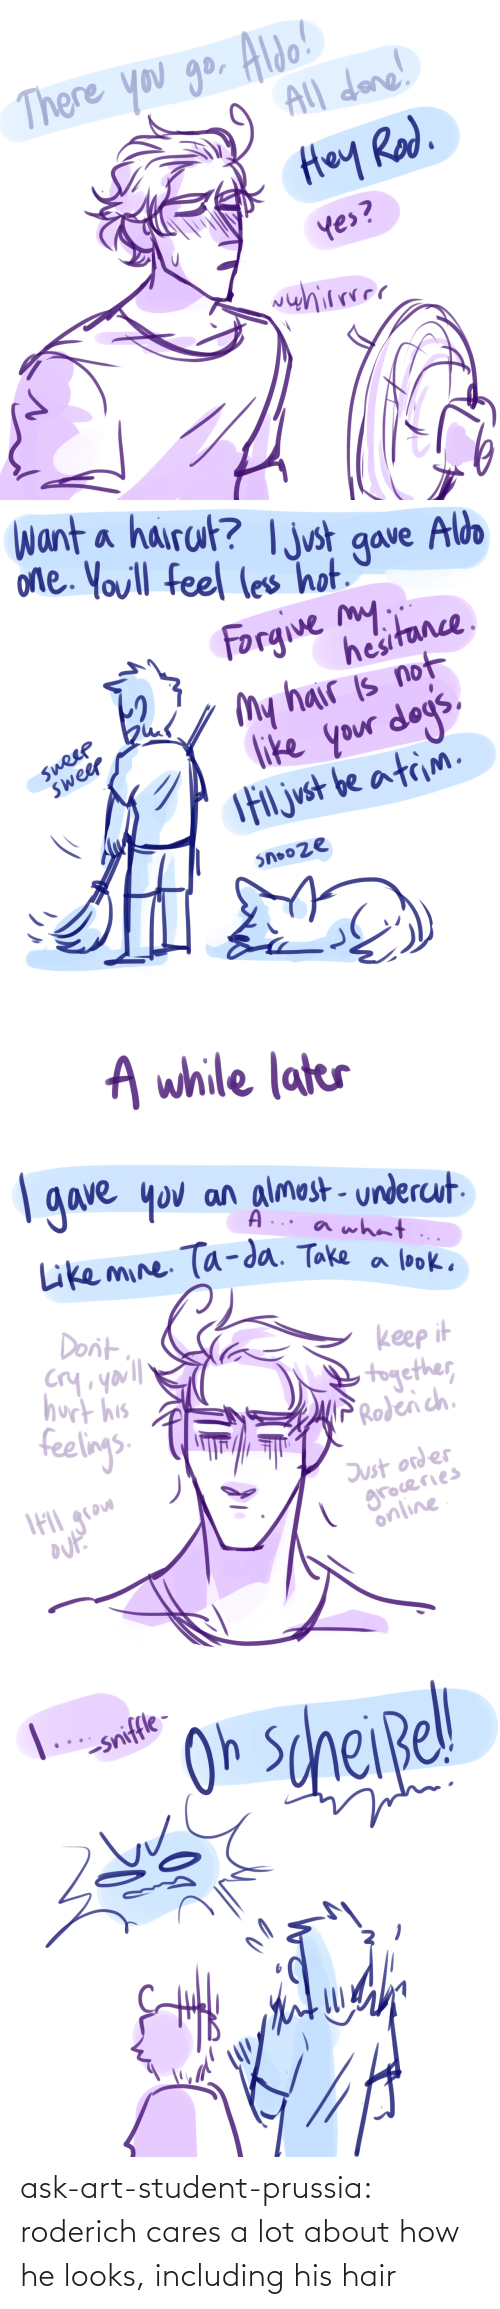 ask: ask-art-student-prussia:  roderich cares a lot about how he looks, including his hair